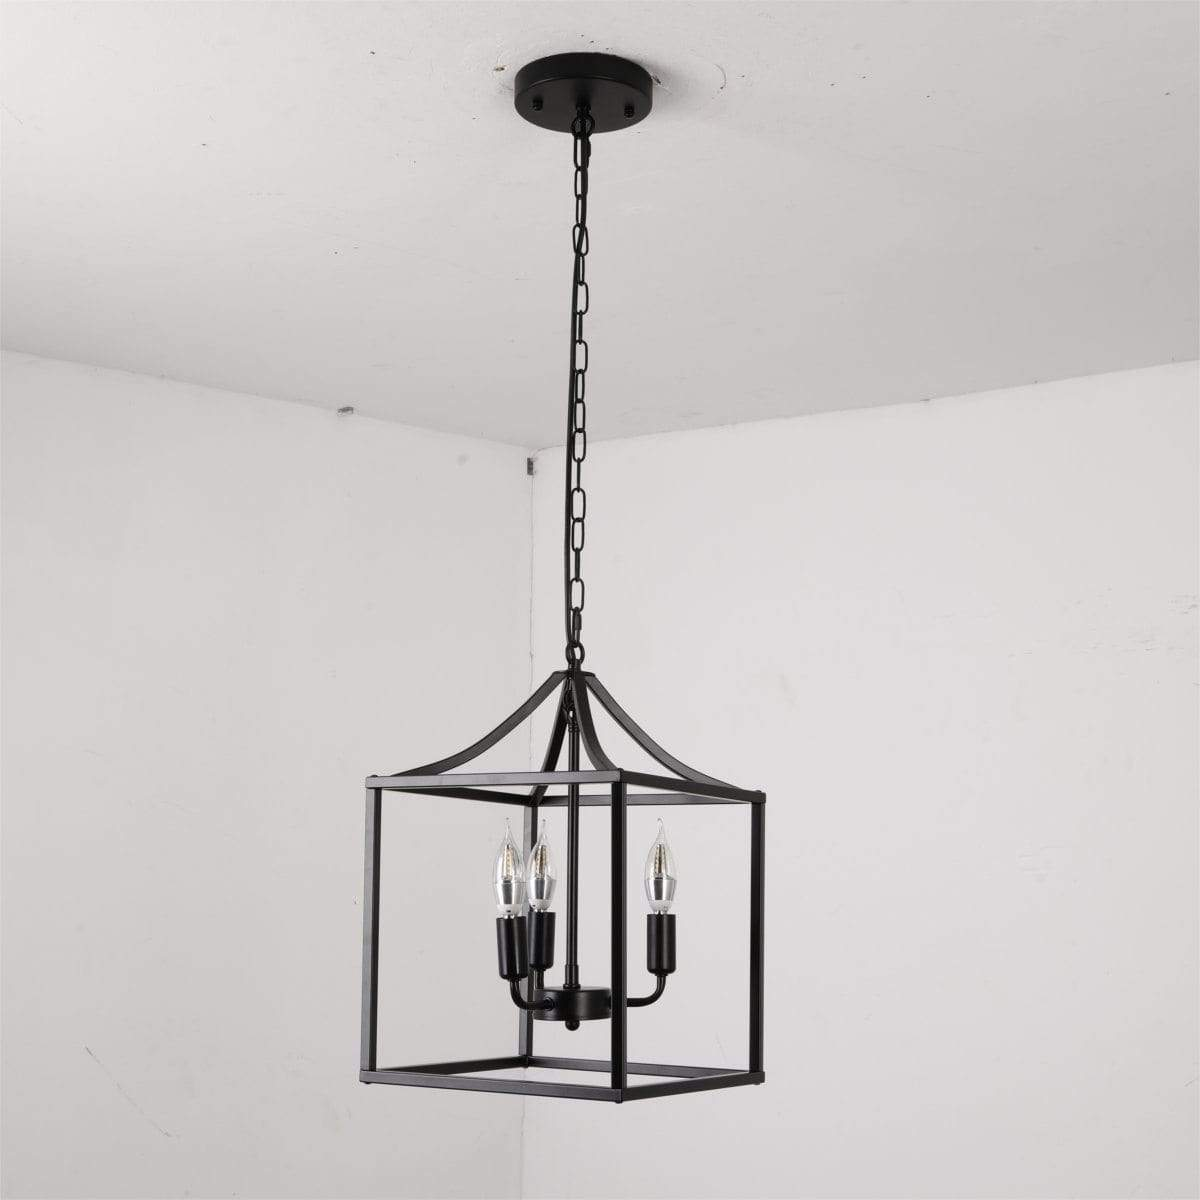 hanging-pendant-lamp-Zavato-Home